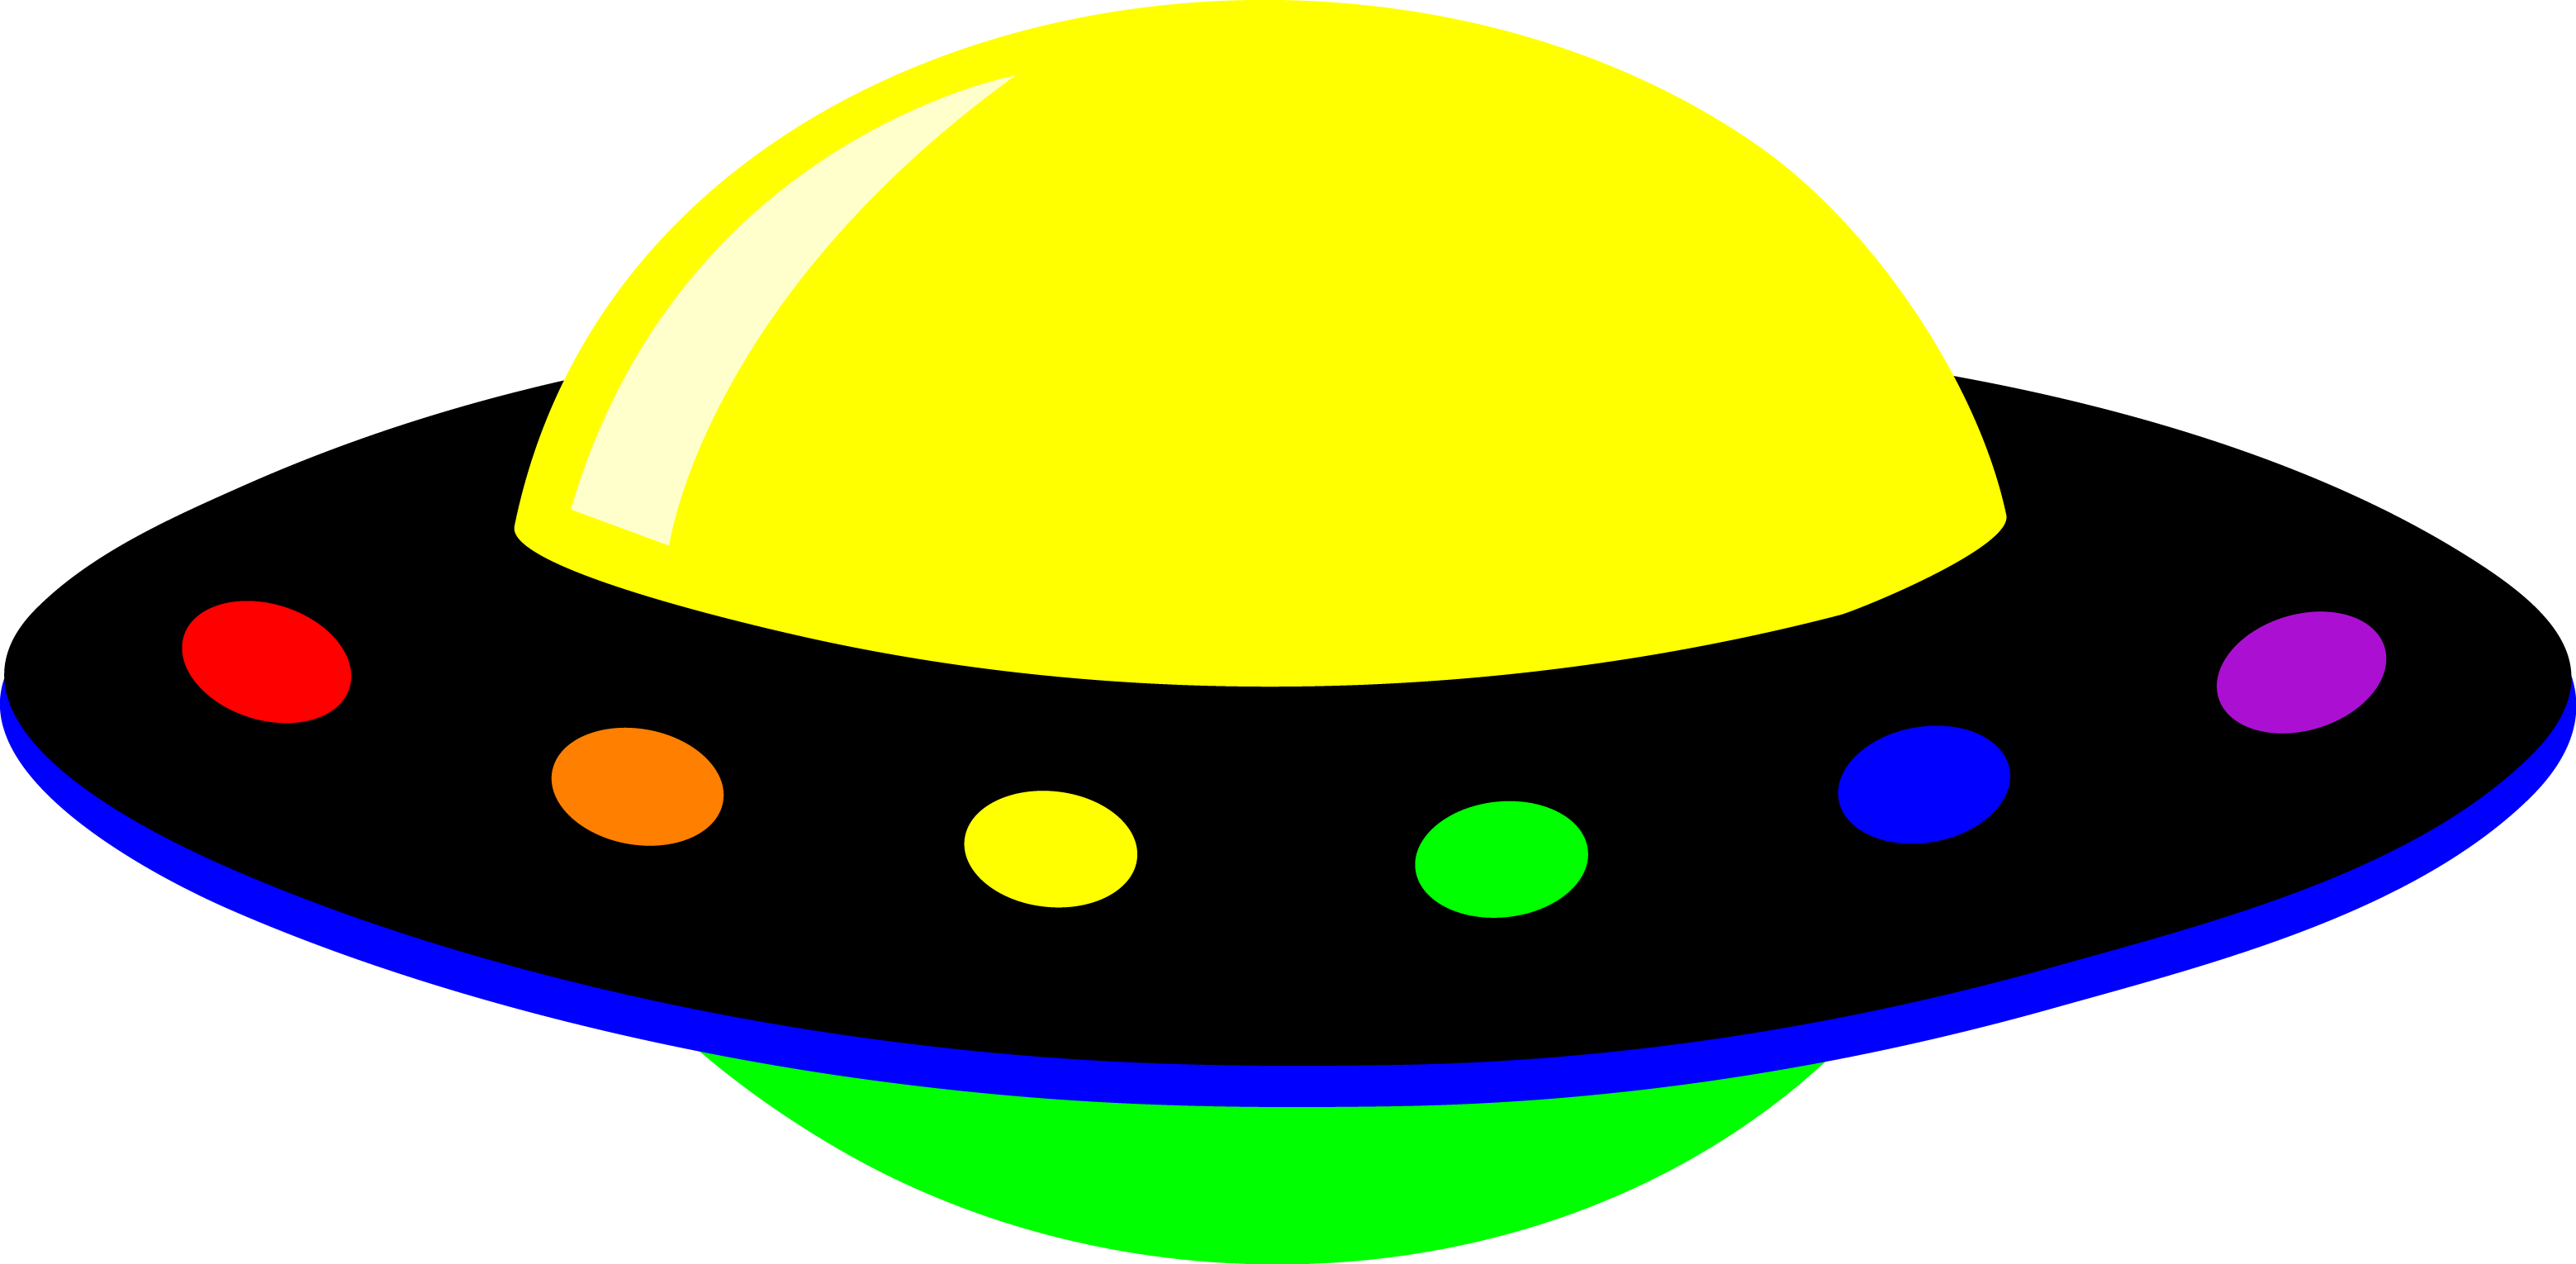 Images For Clip Art Spaceship-Images For Clip Art Spaceship-10